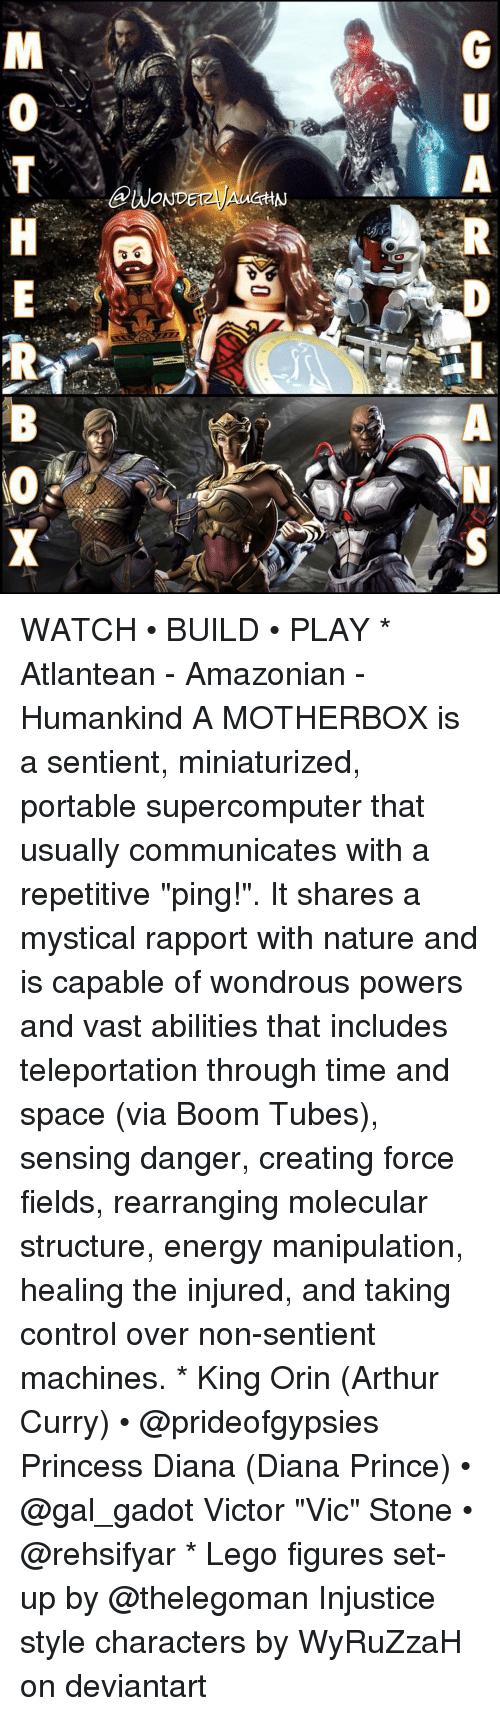 """Machining: A  @WONDETzyAUCHN  GU  RP-ANS  MOTH E  RB (O X WATCH • BUILD • PLAY * Atlantean - Amazonian - Humankind A MOTHERBOX is a sentient, miniaturized, portable supercomputer that usually communicates with a repetitive """"ping!"""". It shares a mystical rapport with nature and is capable of wondrous powers and vast abilities that includes teleportation through time and space (via Boom Tubes), sensing danger, creating force fields, rearranging molecular structure, energy manipulation, healing the injured, and taking control over non-sentient machines. * King Orin (Arthur Curry) • @prideofgypsies Princess Diana (Diana Prince) • @gal_gadot Victor """"Vic"""" Stone • @rehsifyar * Lego figures set-up by @thelegoman Injustice style characters by WyRuZzaH on deviantart"""